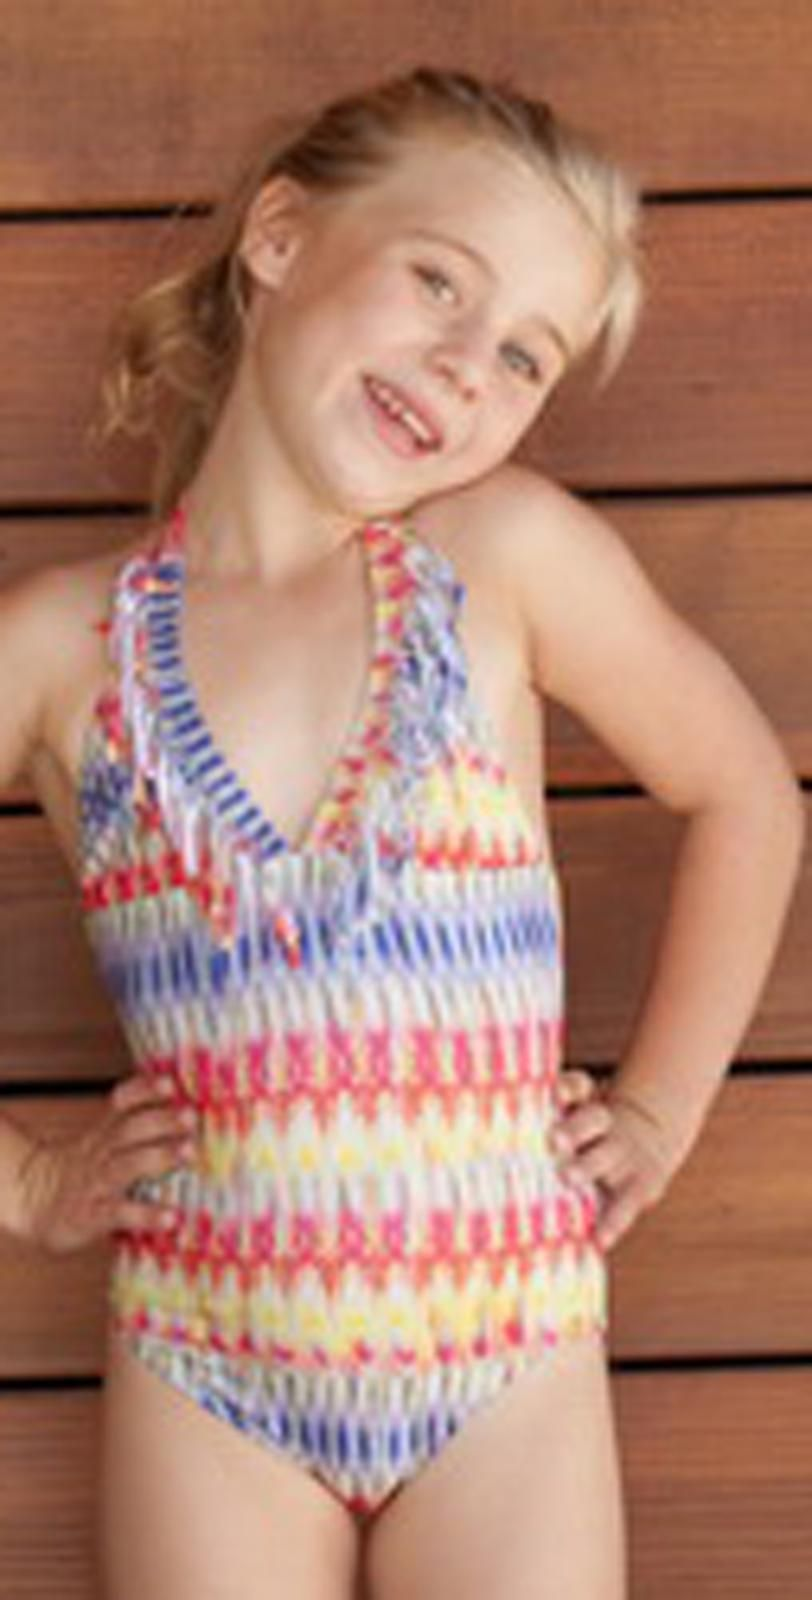 kids' swimwear Every kid needs an awesome swimsuit that both they love and their parents approve of. So, whether you're taking your child to the beach or to the pool, you're going to need a great-quality swimsuit to put them in.